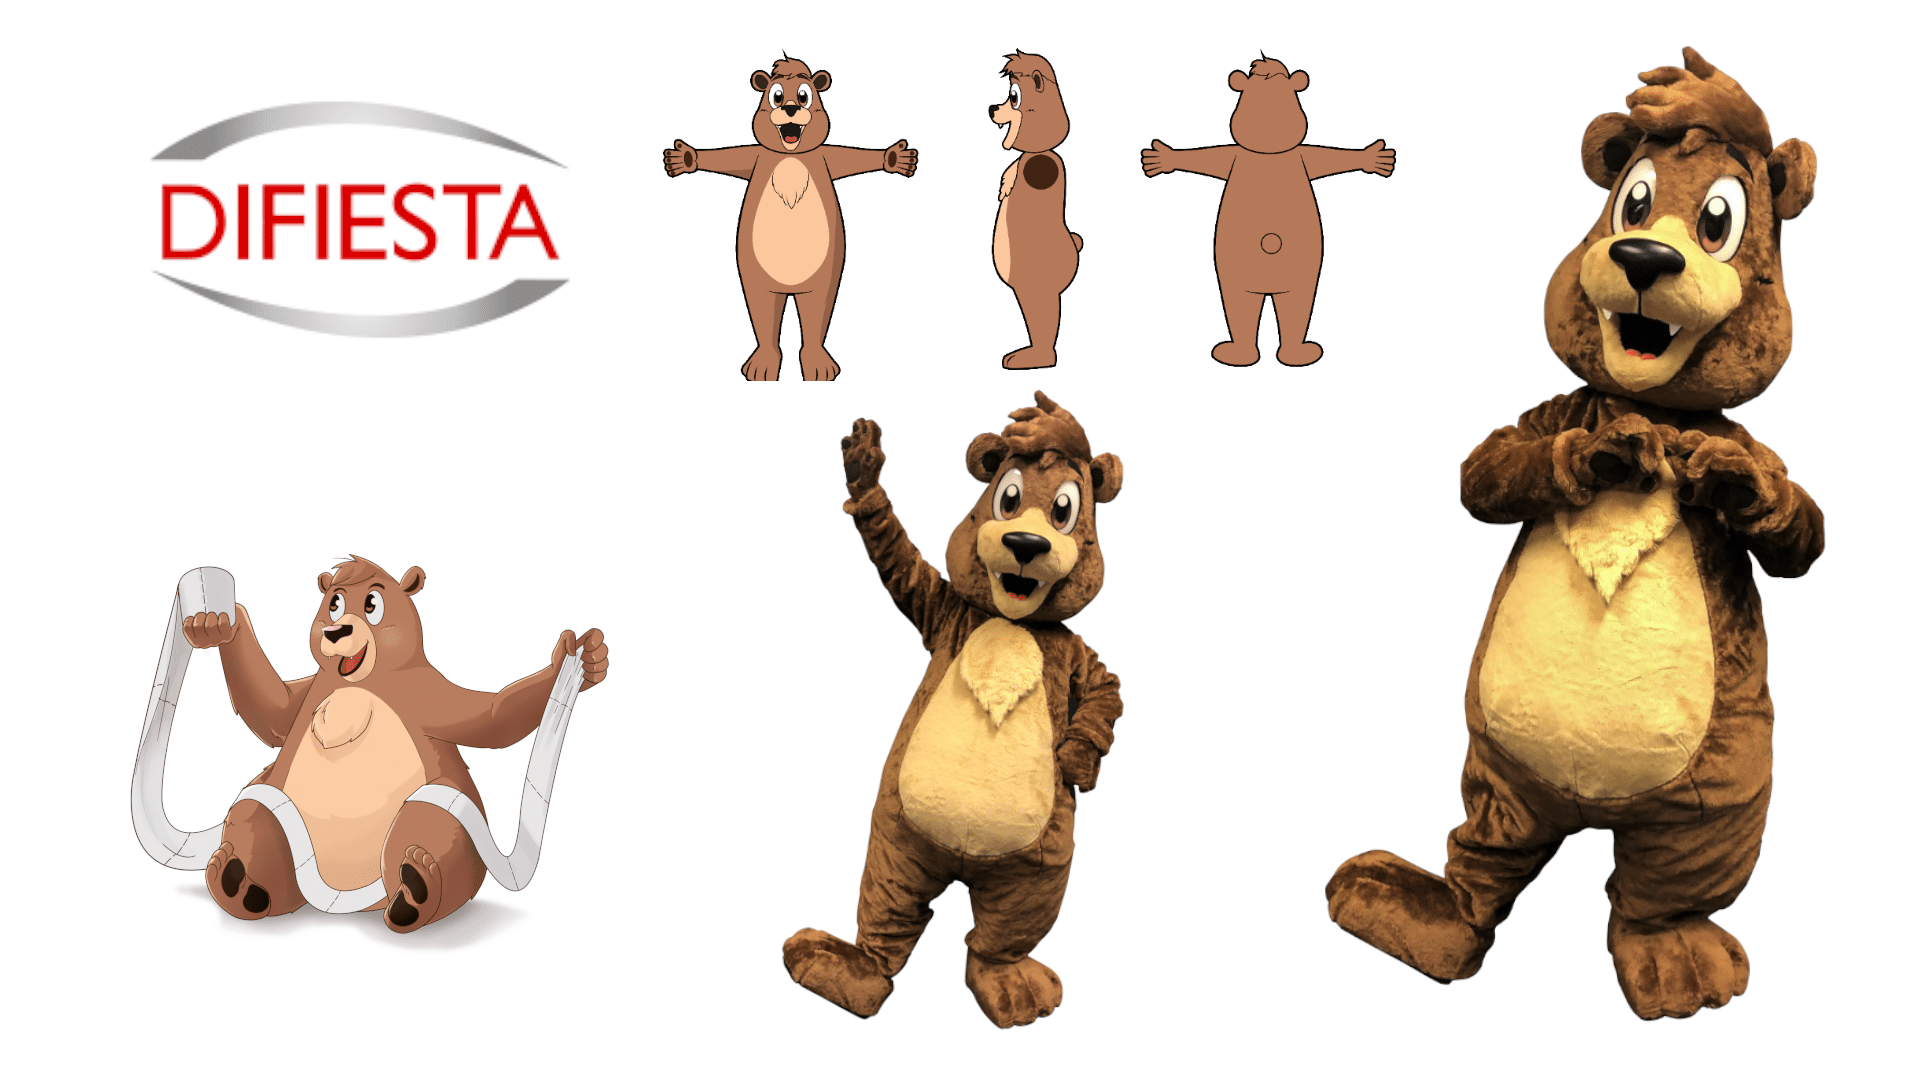 Custom-Mascot-Costume-Bear-Difiesta-by-Promo-Bears